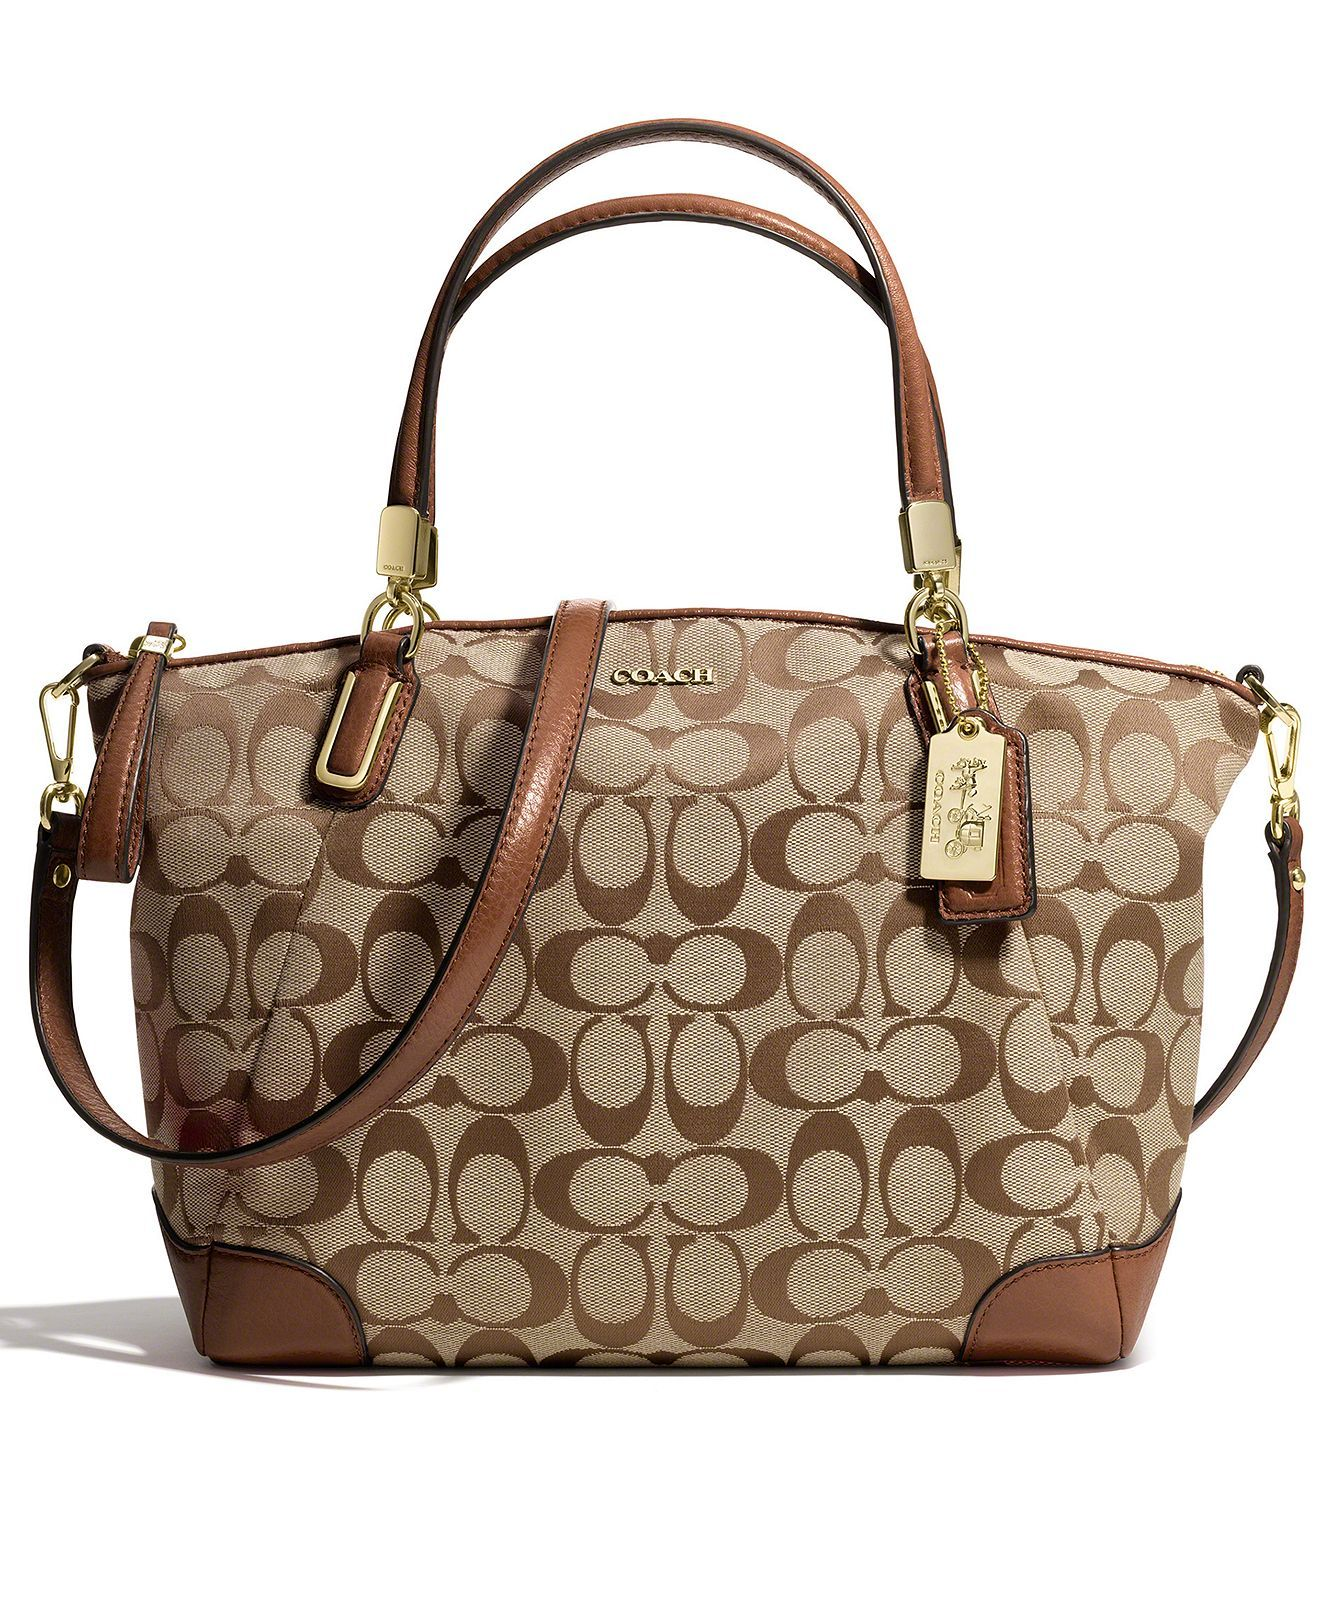 COACH MADISON SMALL KELSEY SATCHEL IN SIGNATURE FABRIC - COACH - Handbags    Accessories - Macy s d6d0acb966285